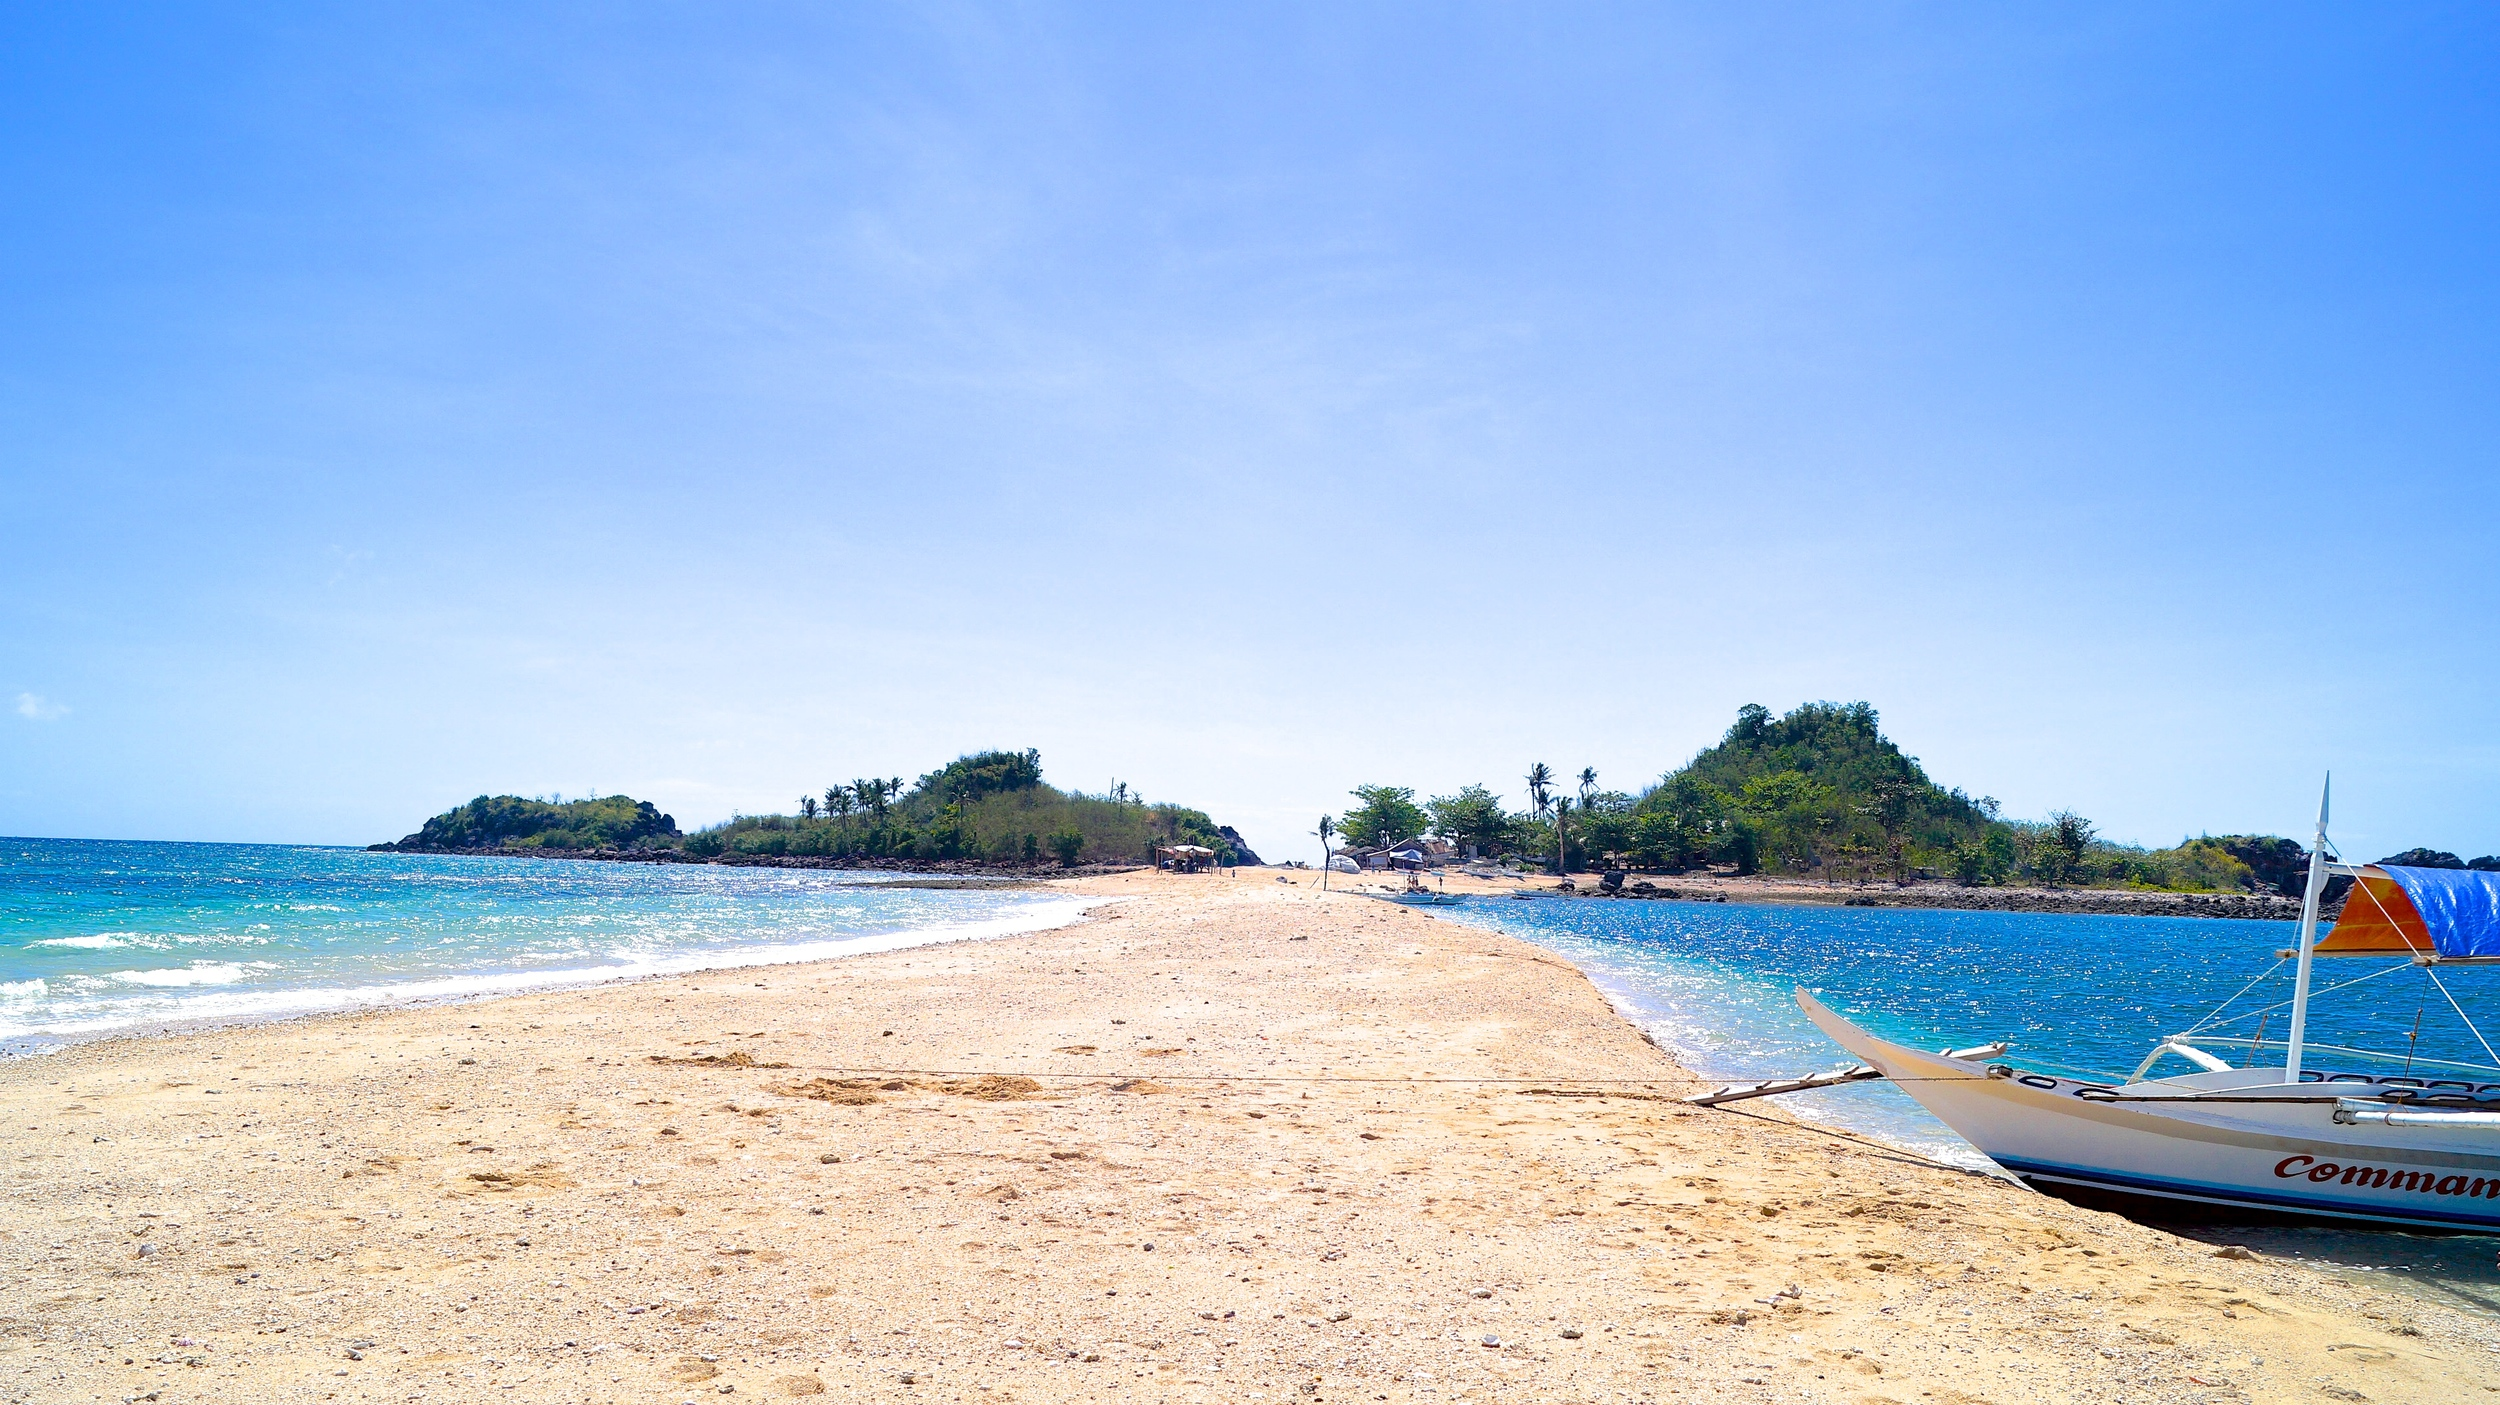 Philippines, Islas De Gigantes - Bantigue Sandbar - illumelation